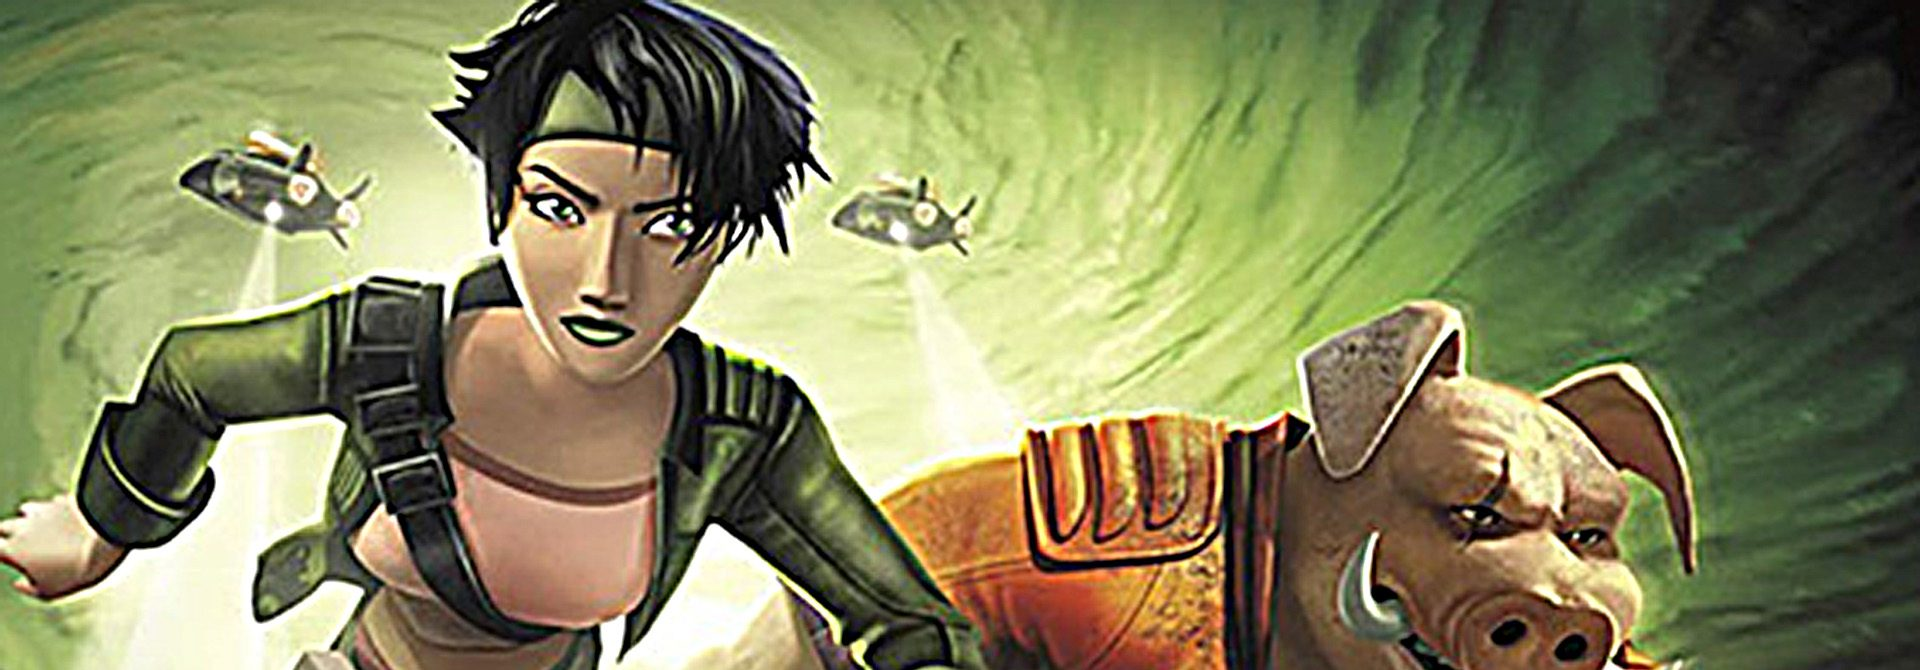 Beyond Good And Evil Moves Beyond Video Games